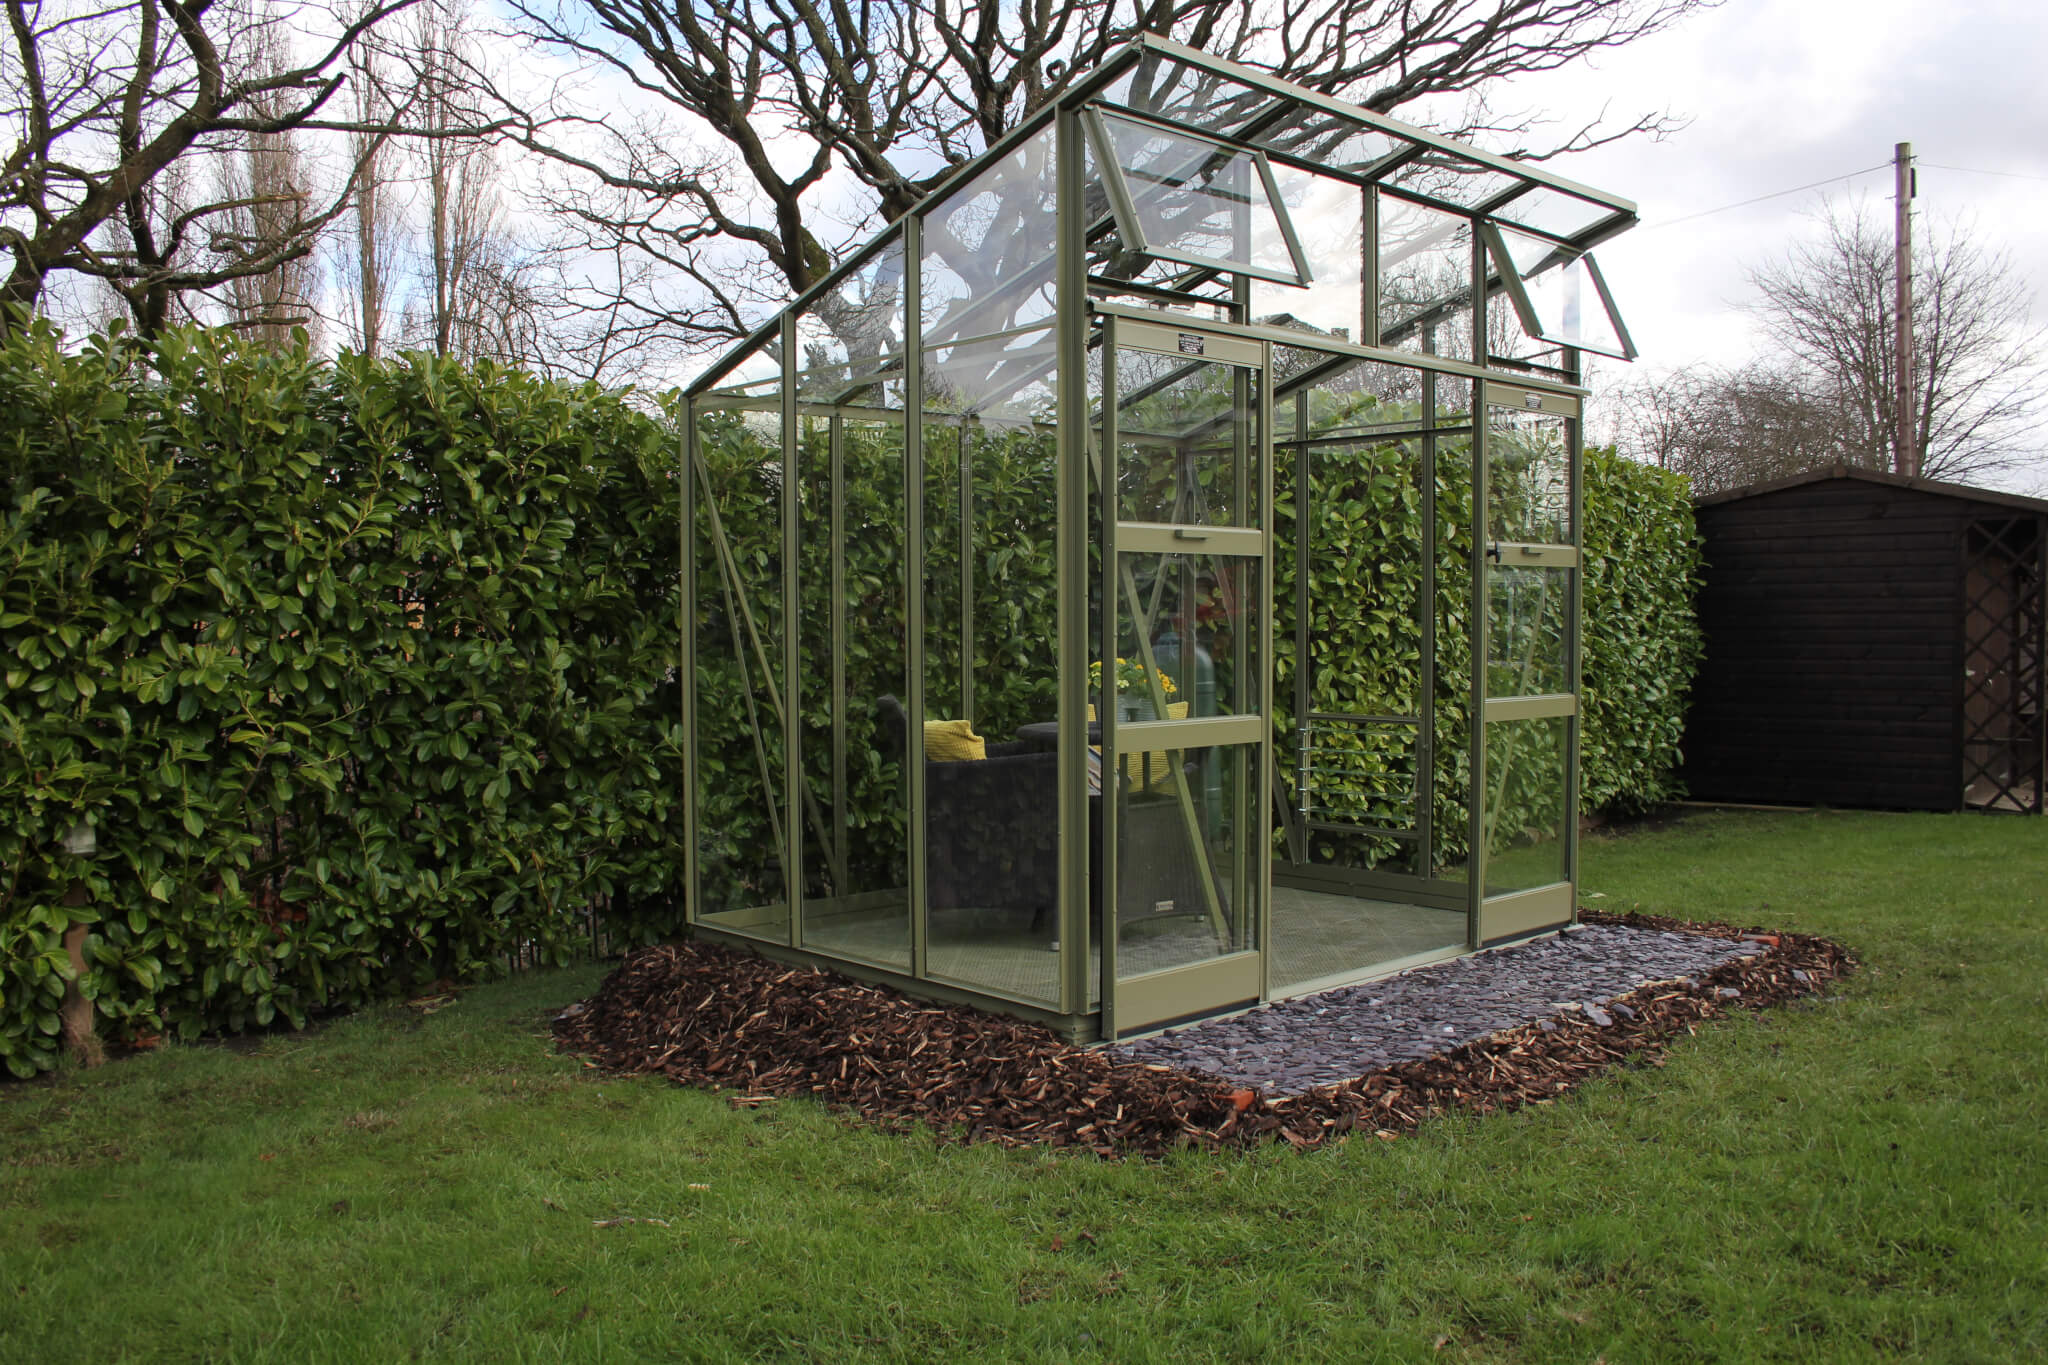 Aluminium exterior of Edge greenhouses by GSG Buildings.